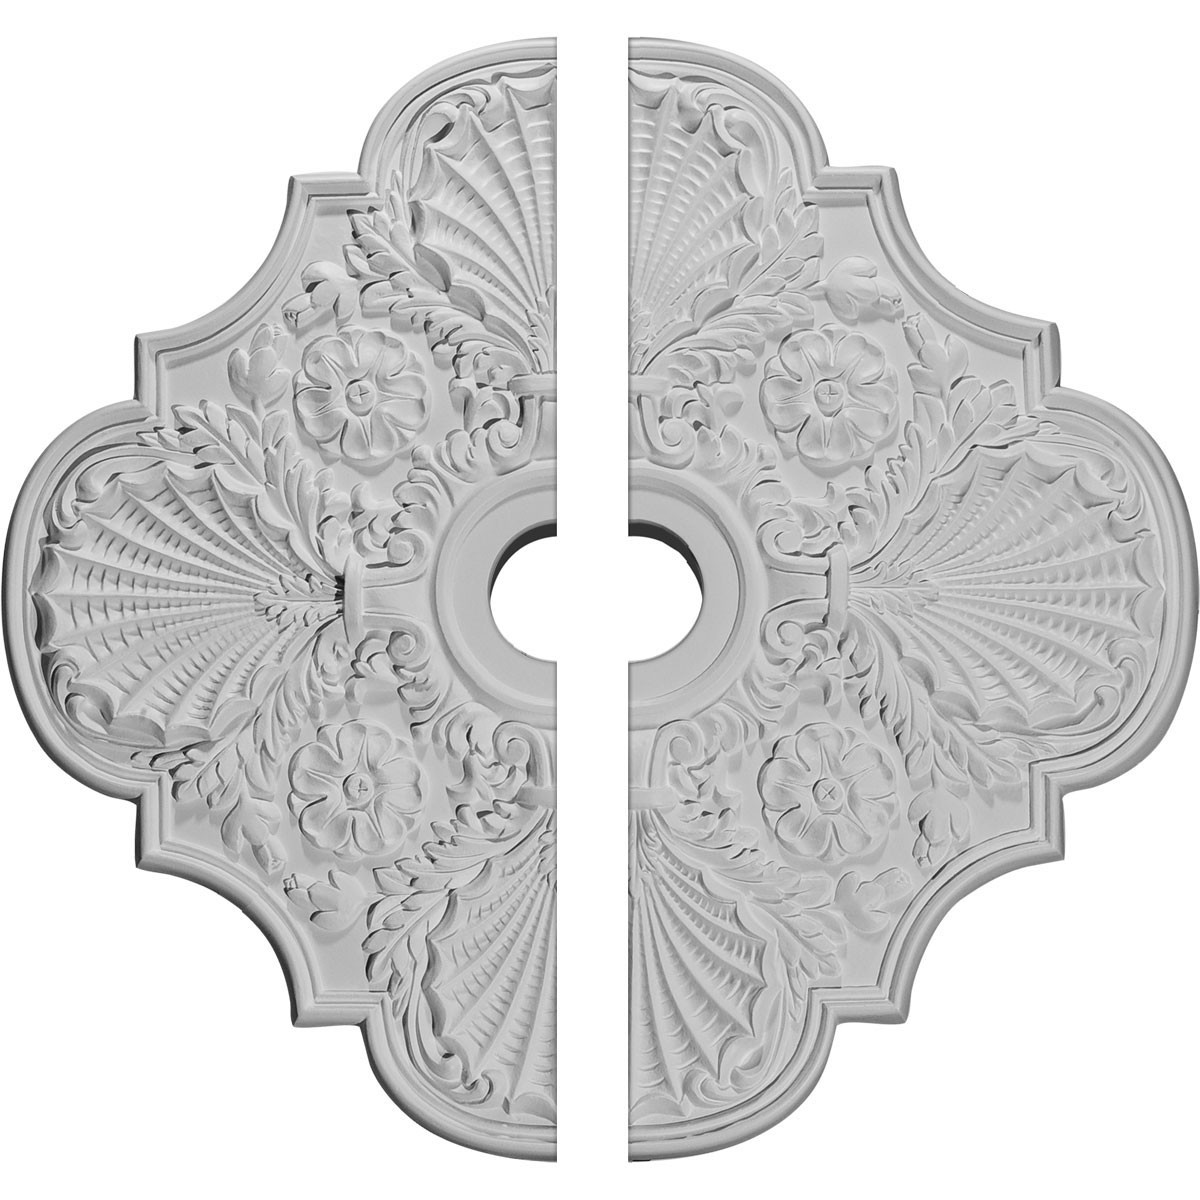 """EM-CM29FW2 - 29""""OD x 3 5/8""""ID x 1 3/8""""P Flower Ceiling Medallion, Two Piece (Fits Canopies up to 6 1/4"""")"""